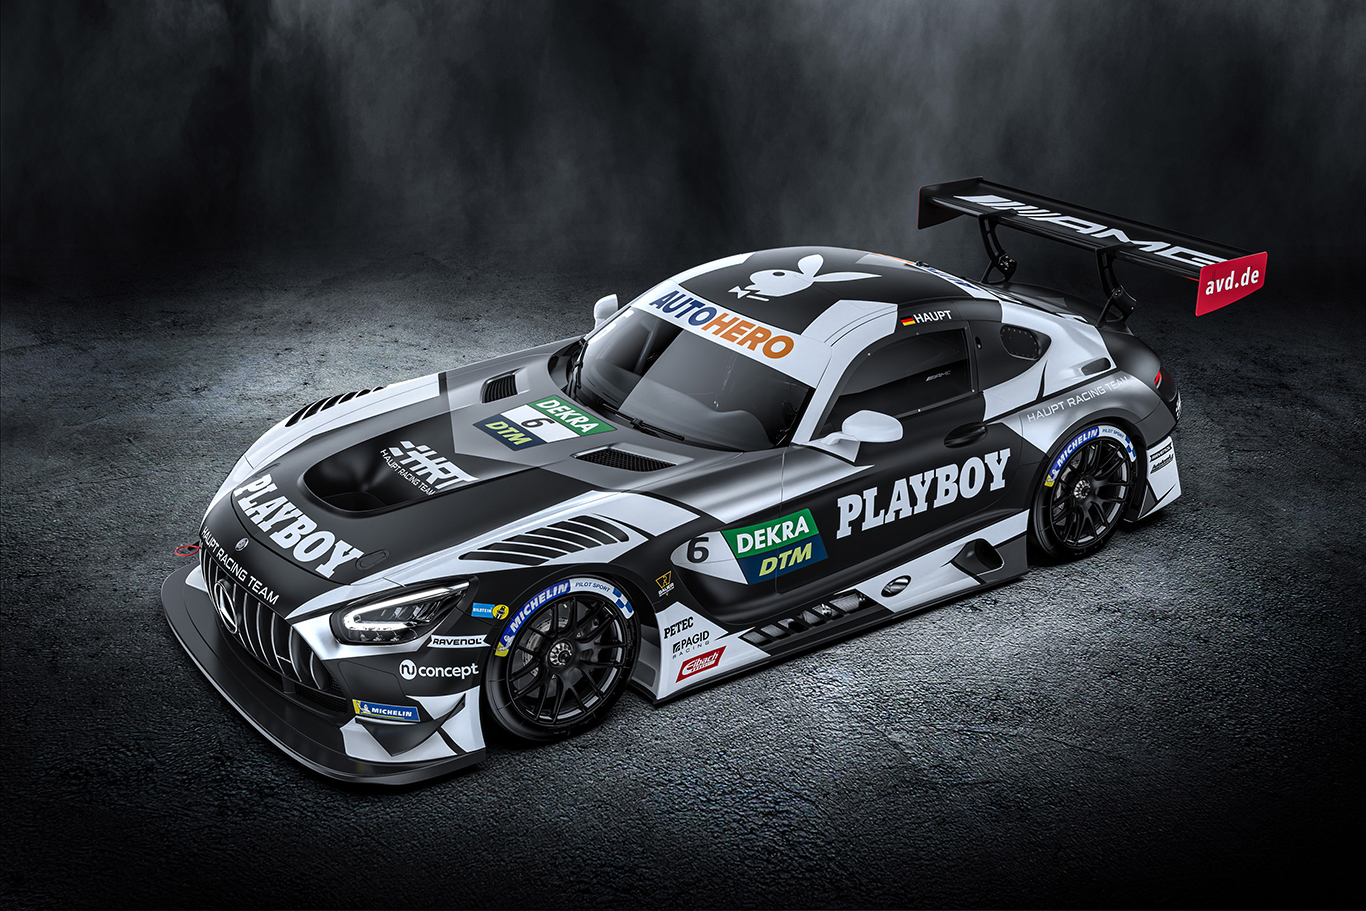 Hubert Haupt and Playboy join forces for historic return to DTM